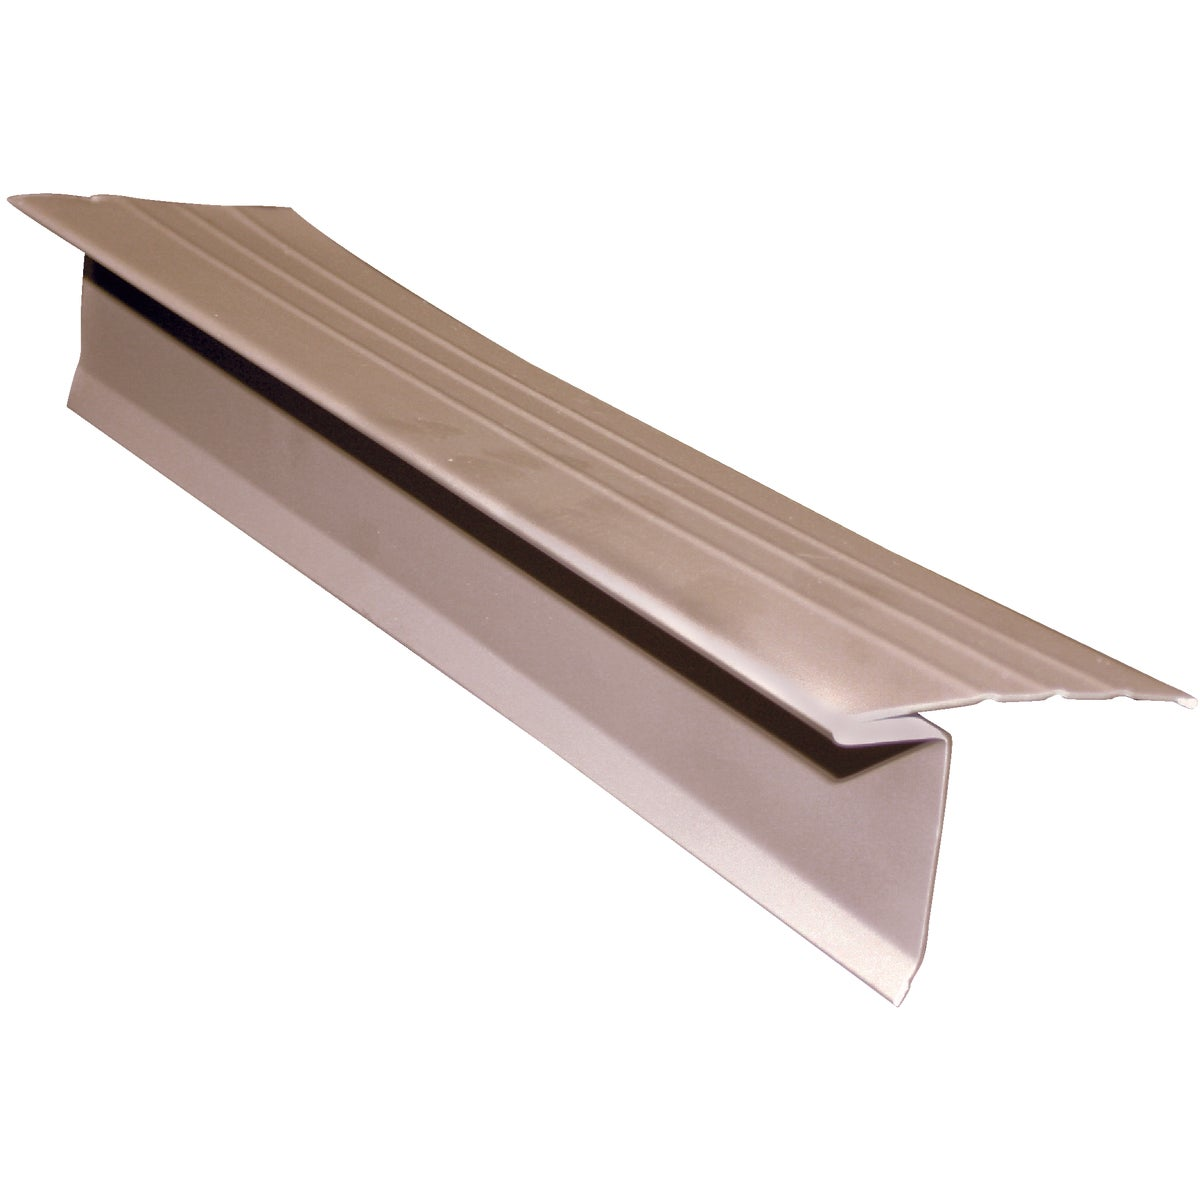 "6""STYLE LL TP ROOF EDGE - 32690-AJ60 by Klauer Mfg Co"